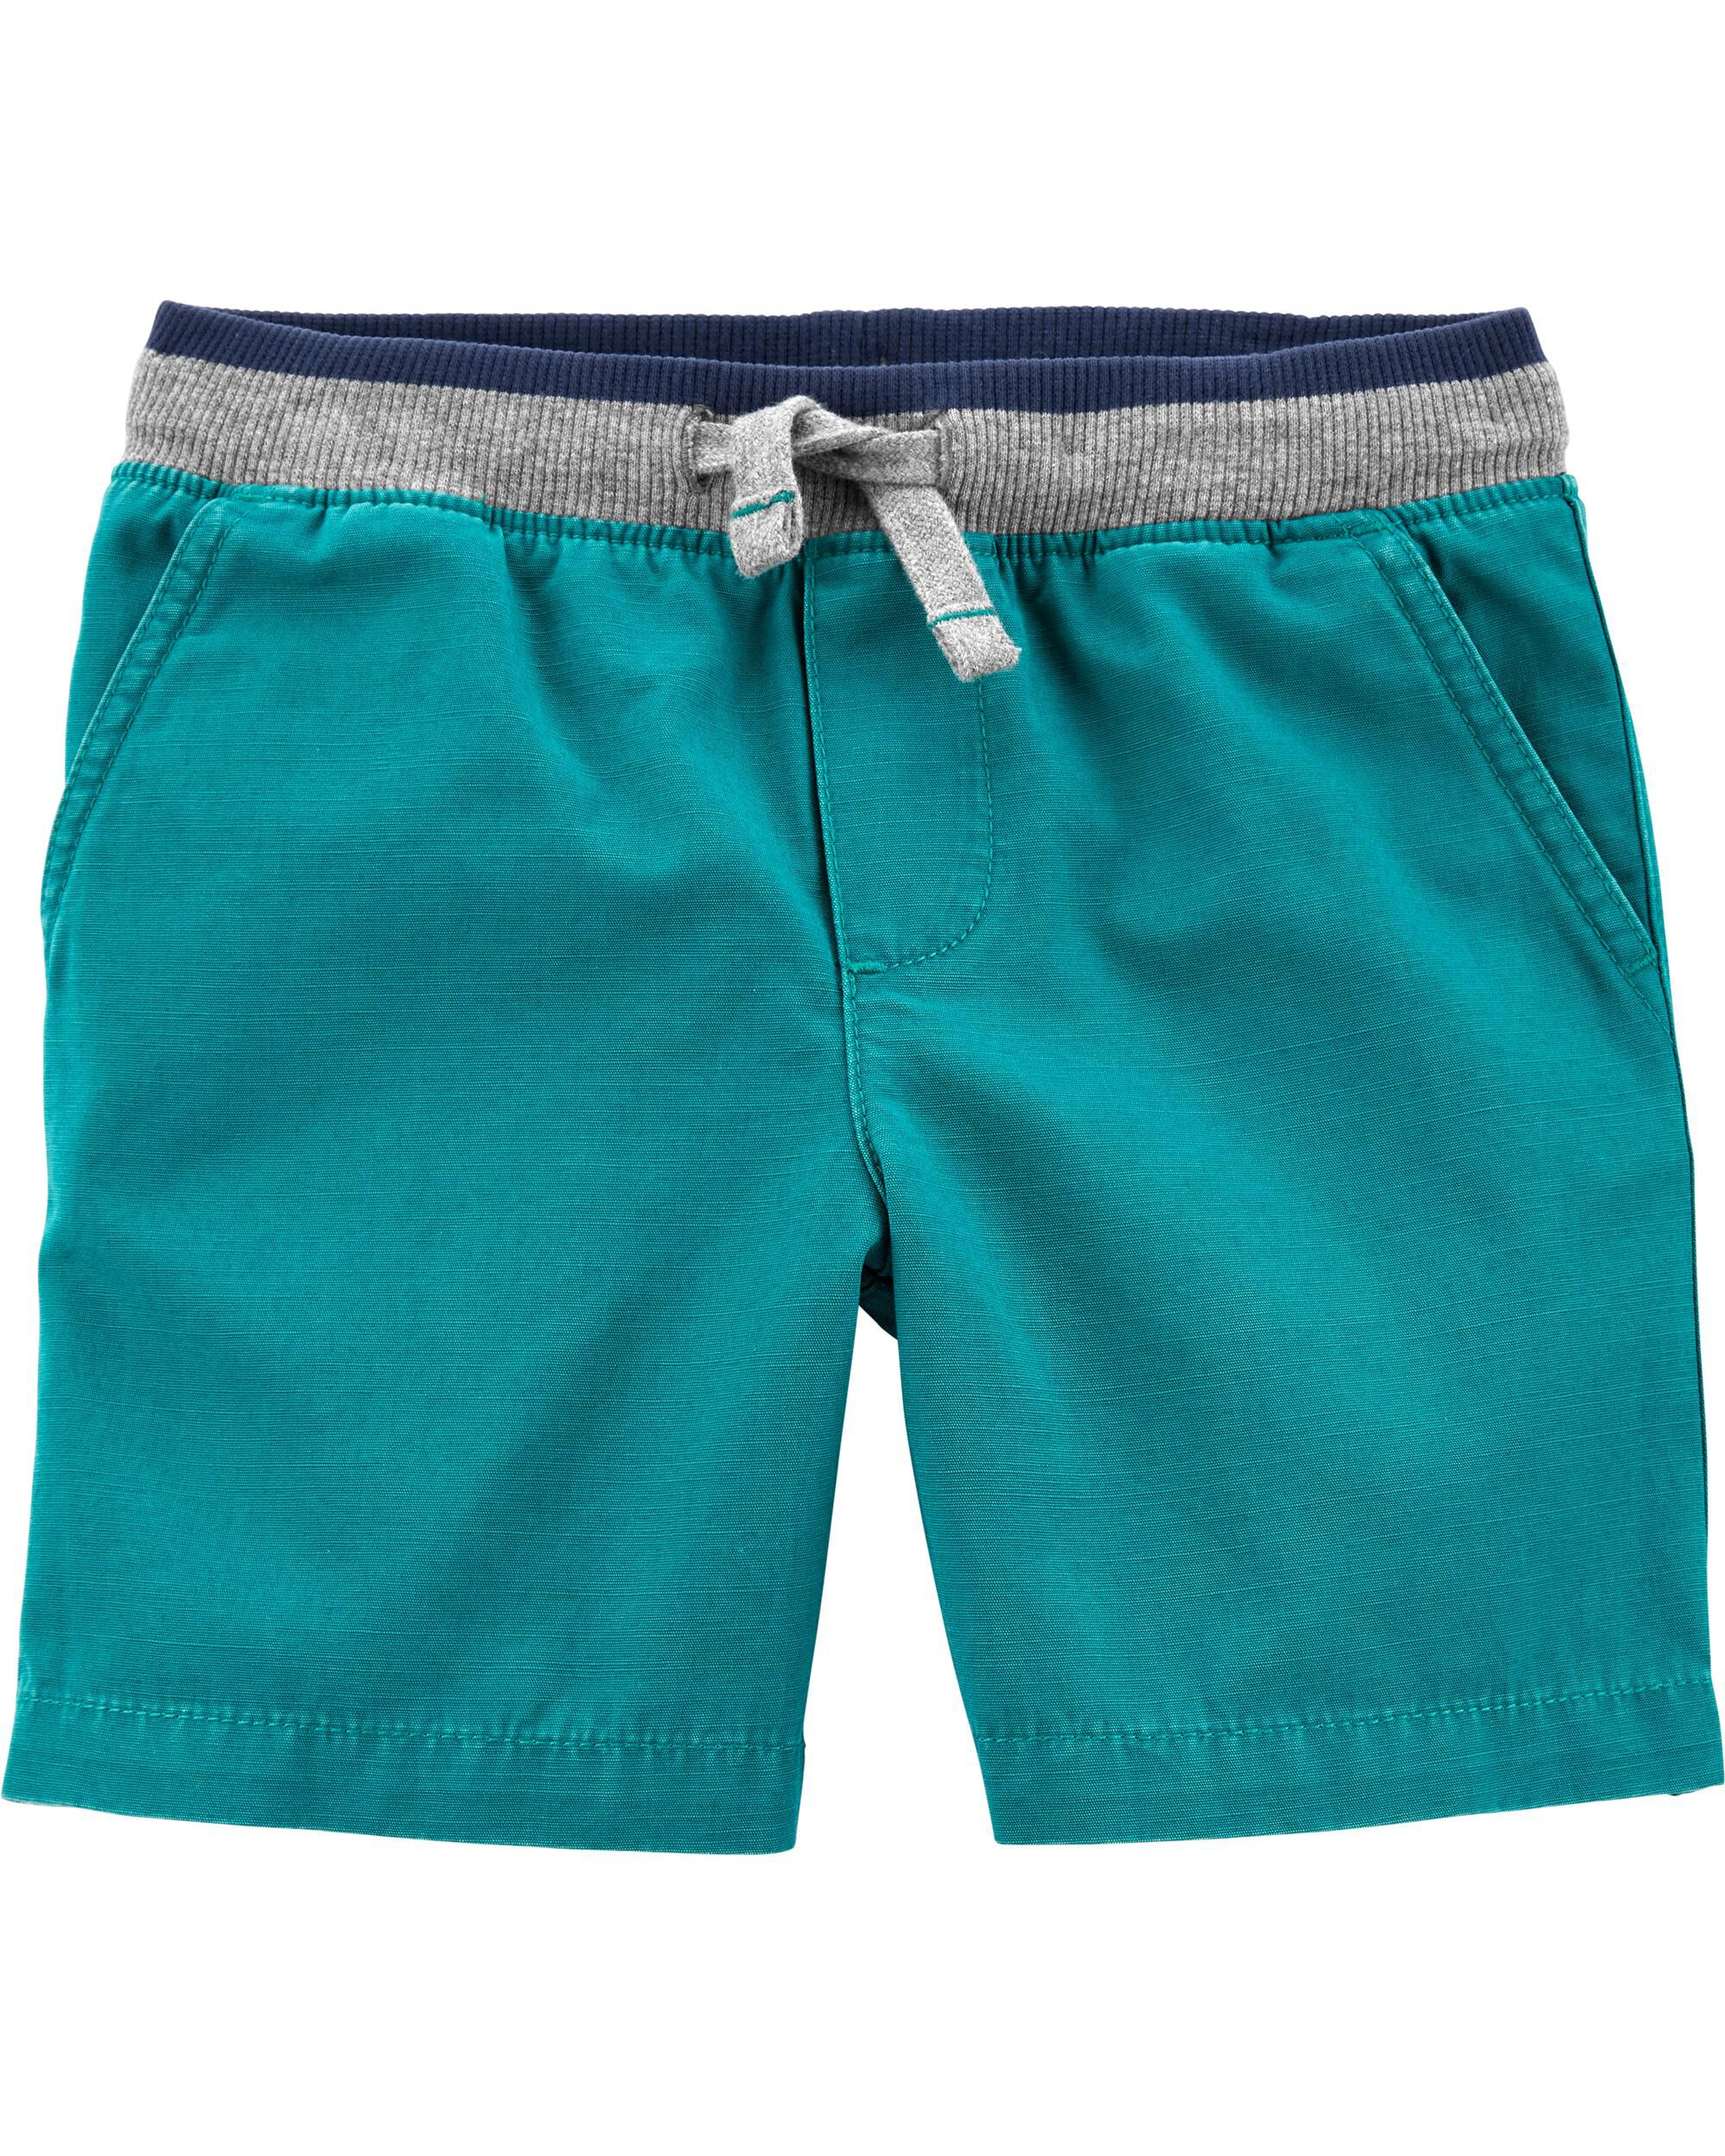 Durable Comfortable NWT Carter/'s Boys Teal Plaid Shorts 3T /& 4T Retail $16